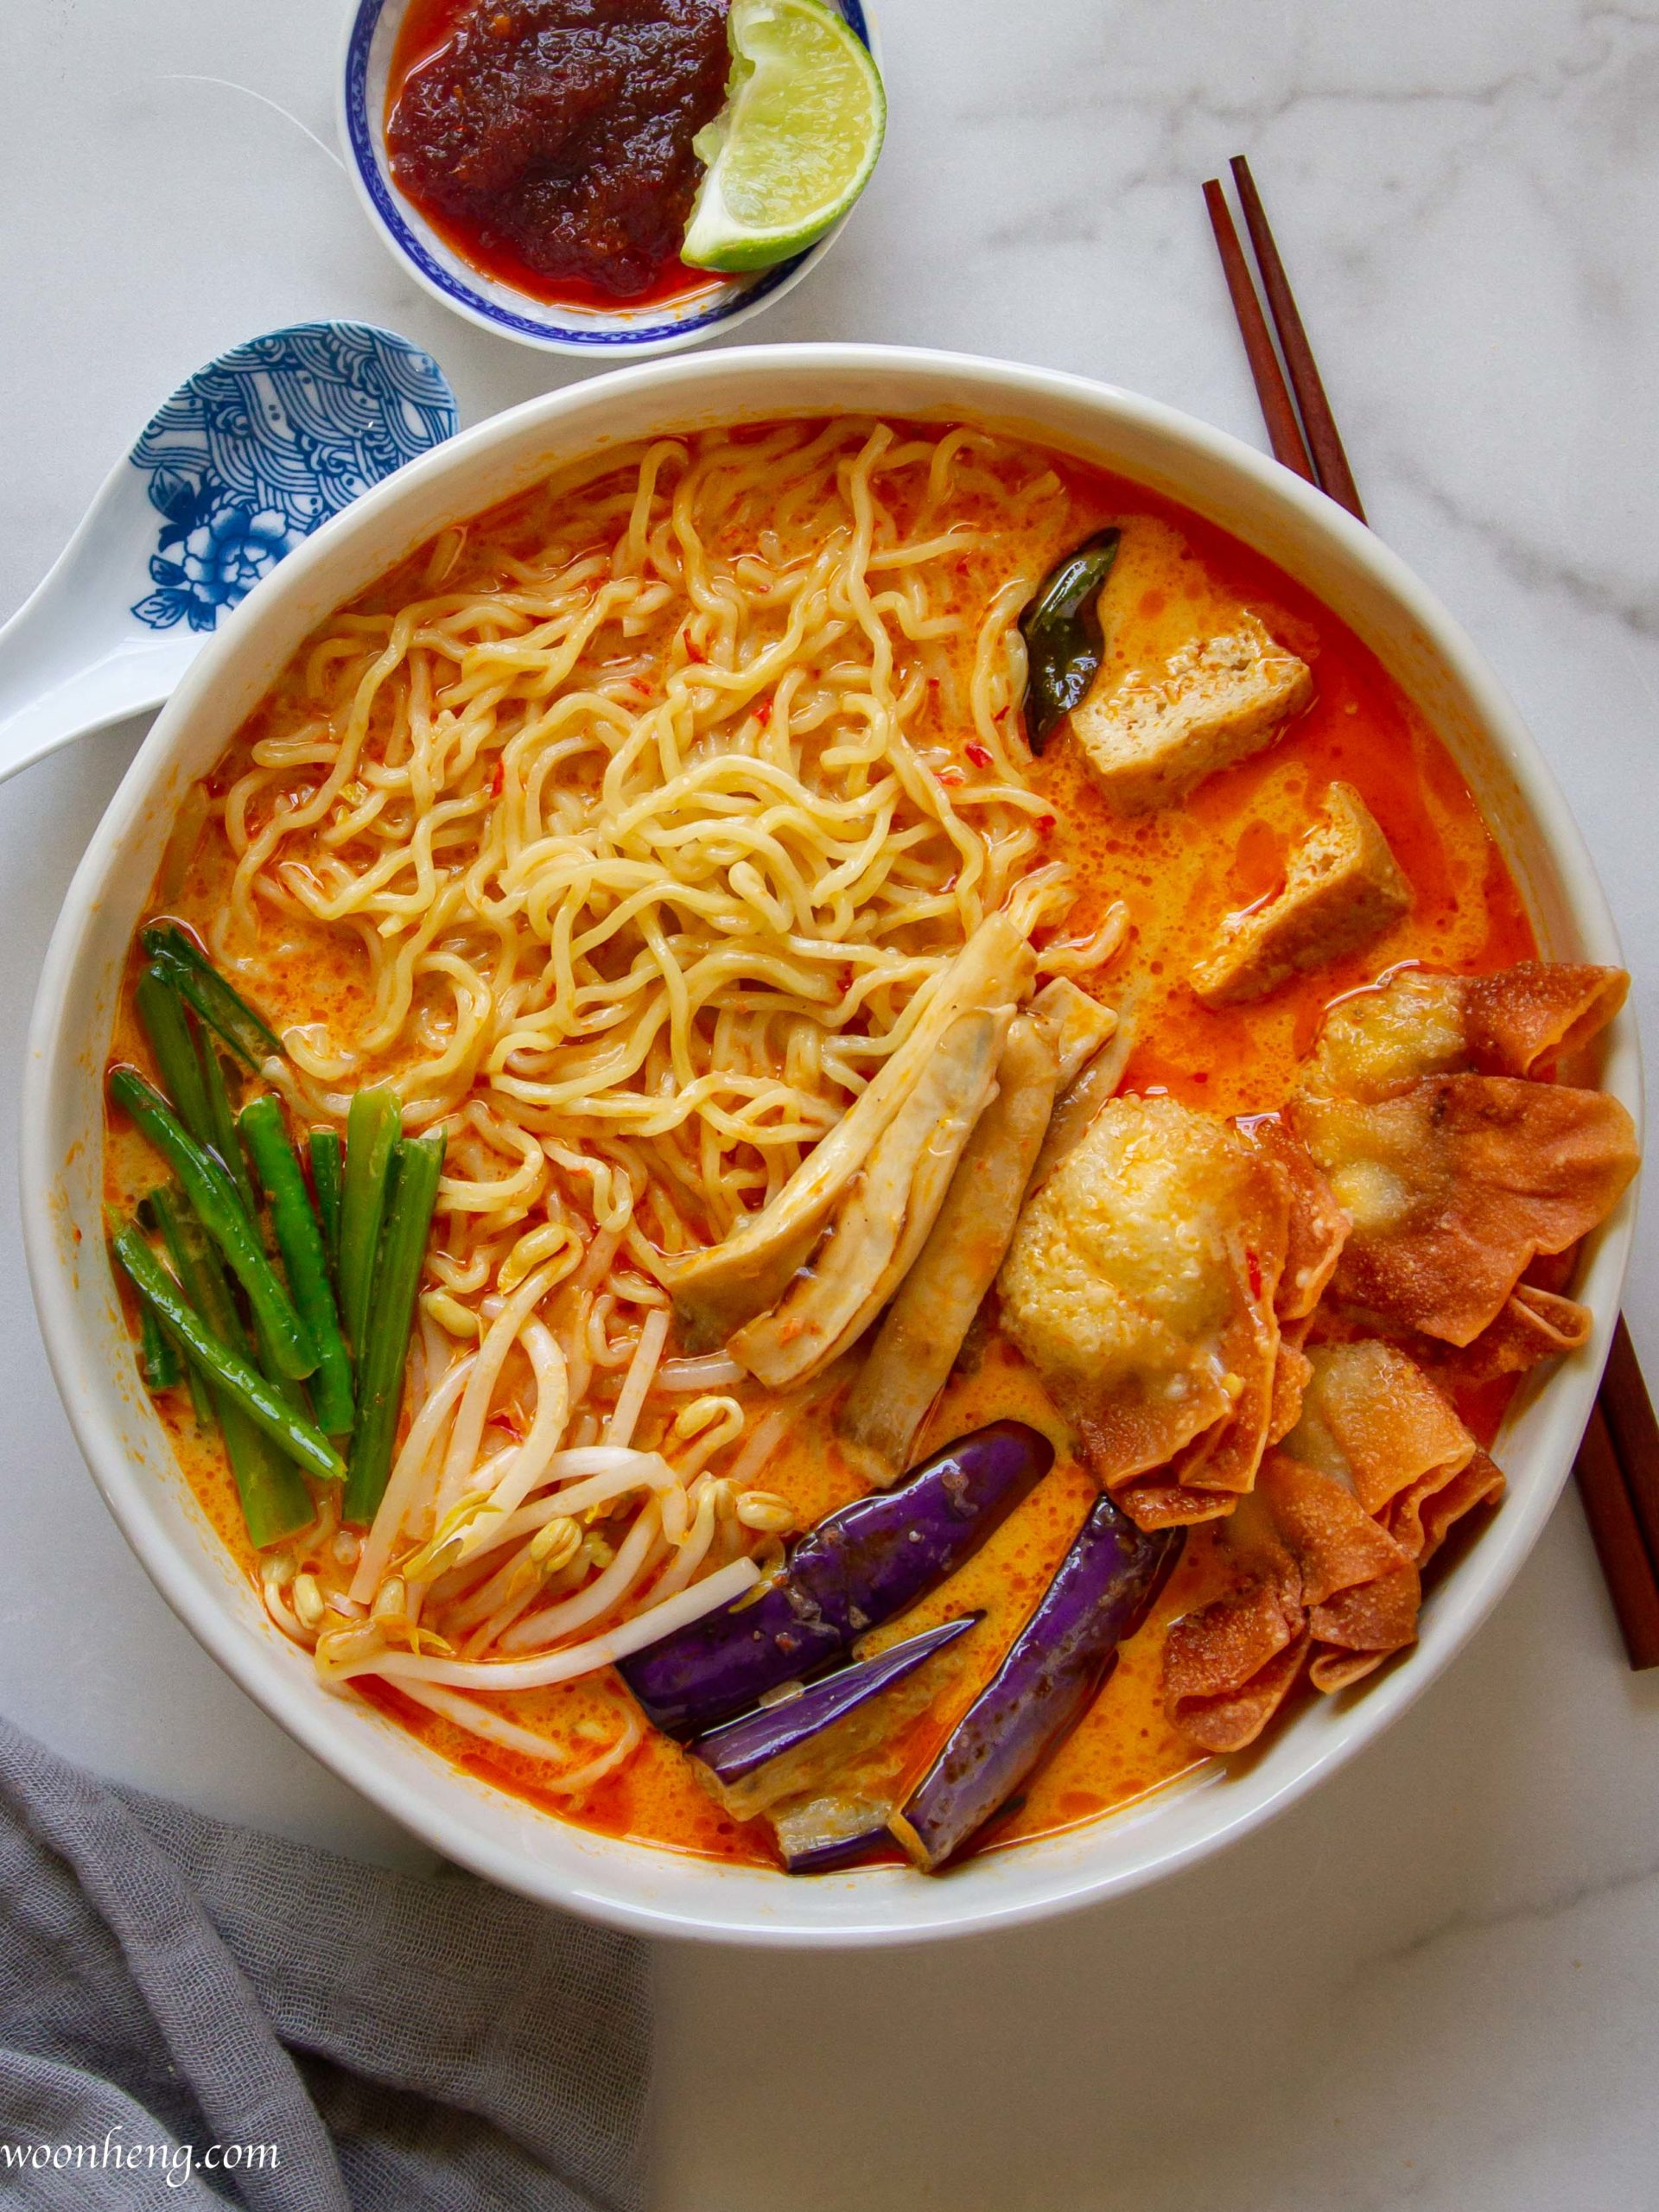 Curry Laksa Curry Mee Malaysian Flavor 咖喱叻沙 Woonheng